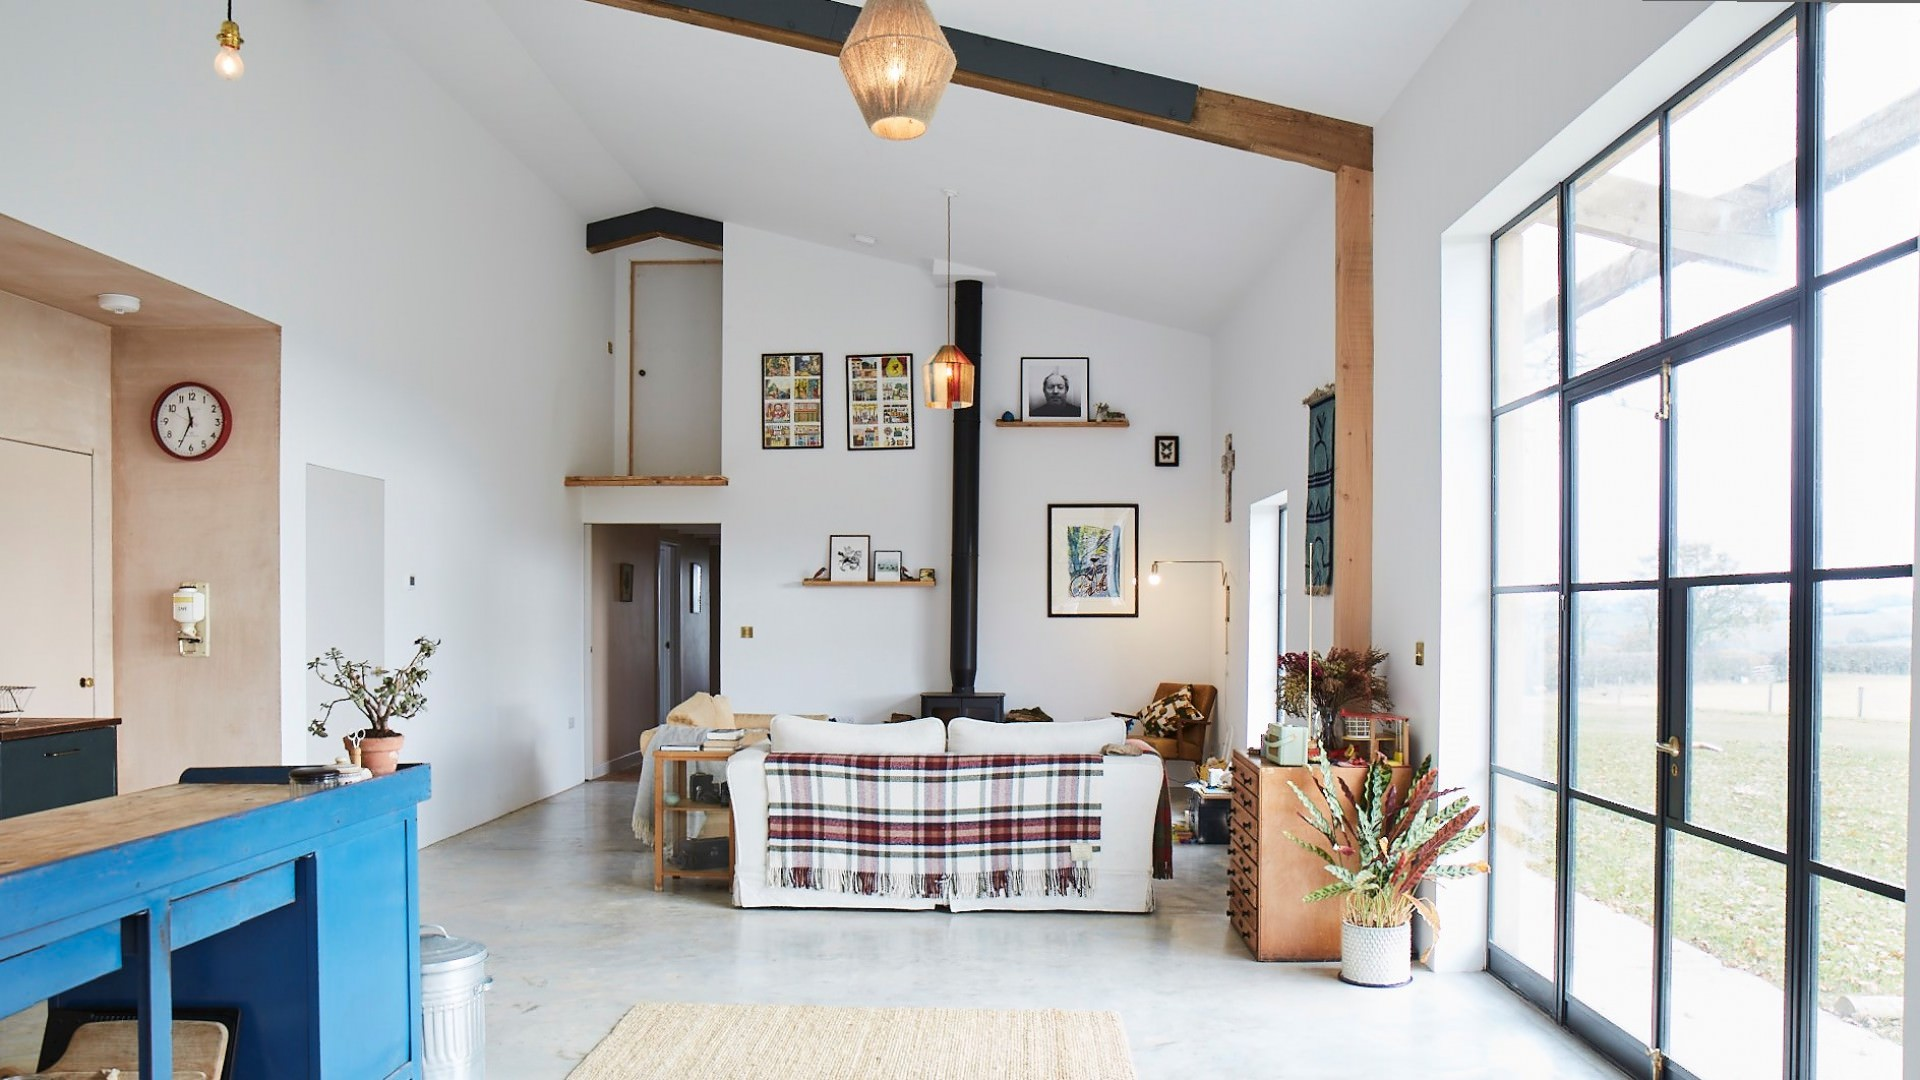 3 architects barn conversion wood burner